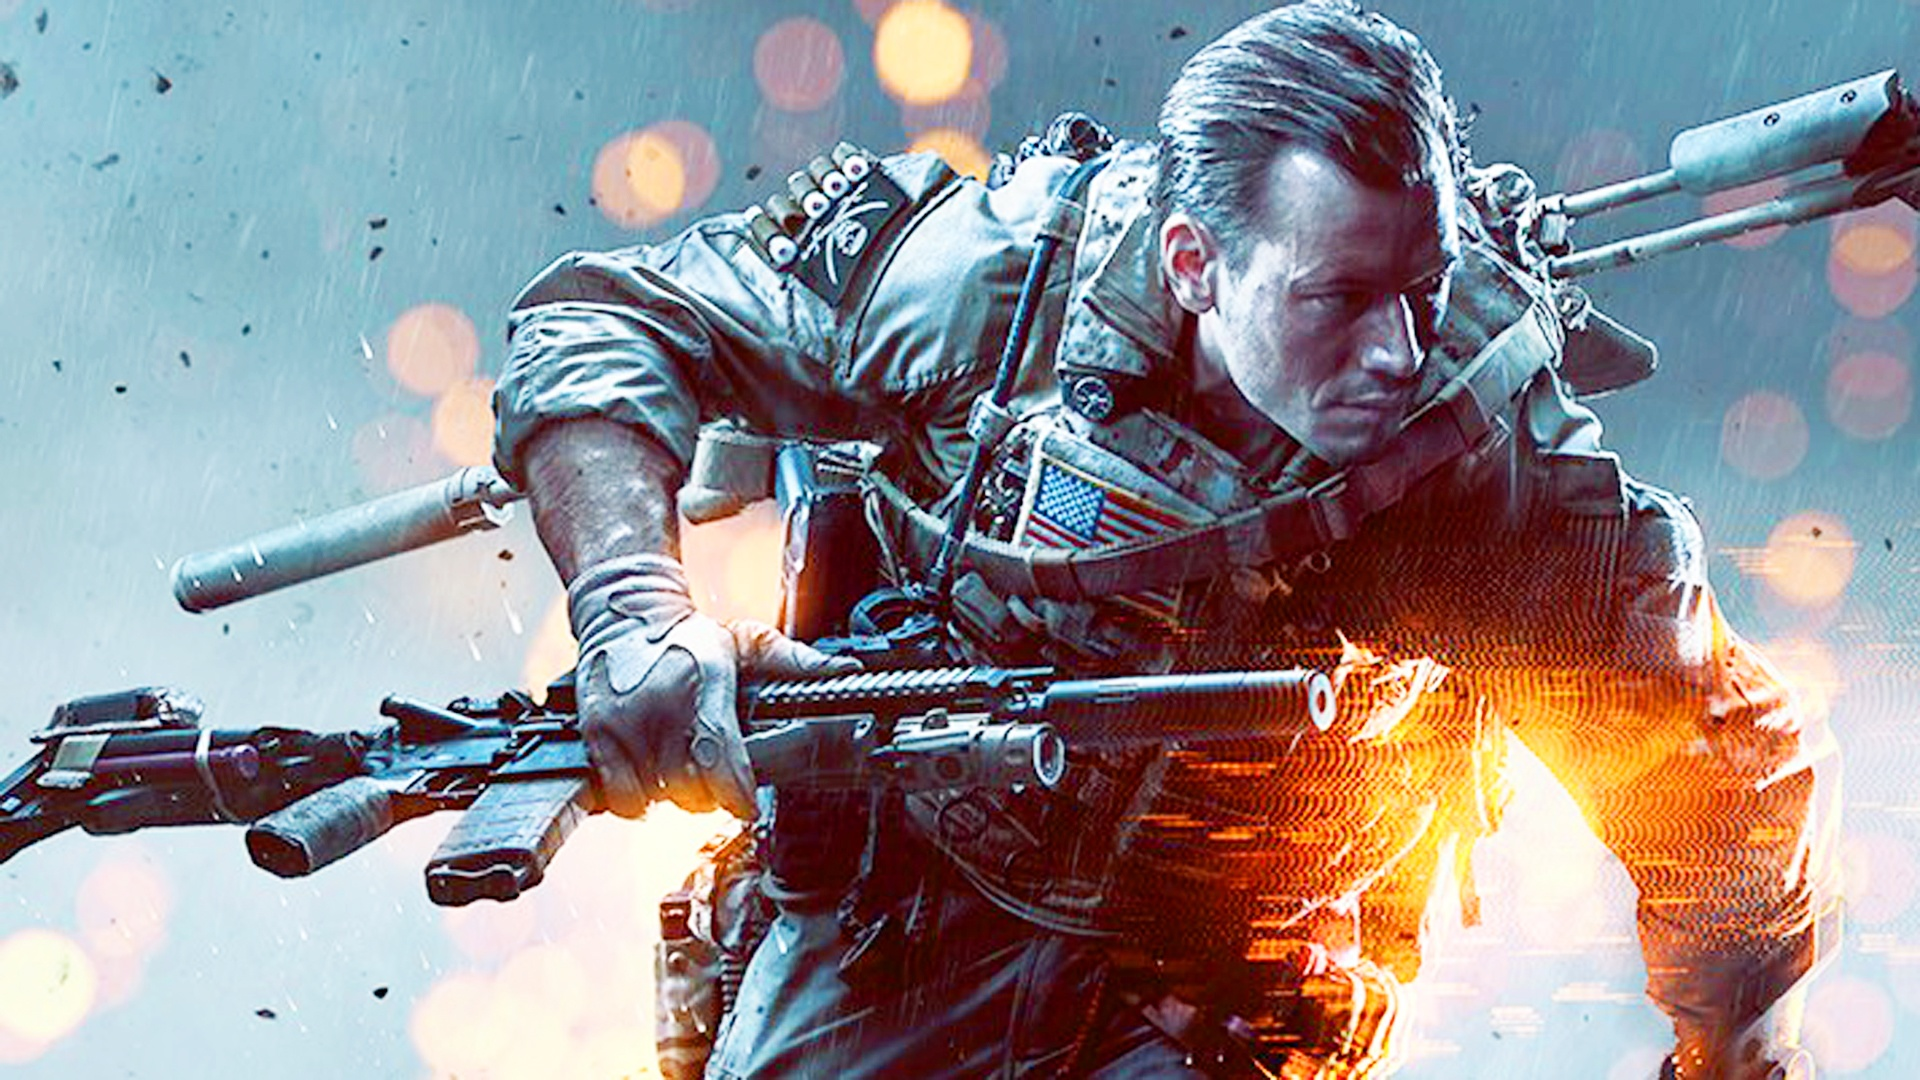 Battlefield 6: Insider promises a mix of parts 3 and 4 including campaign